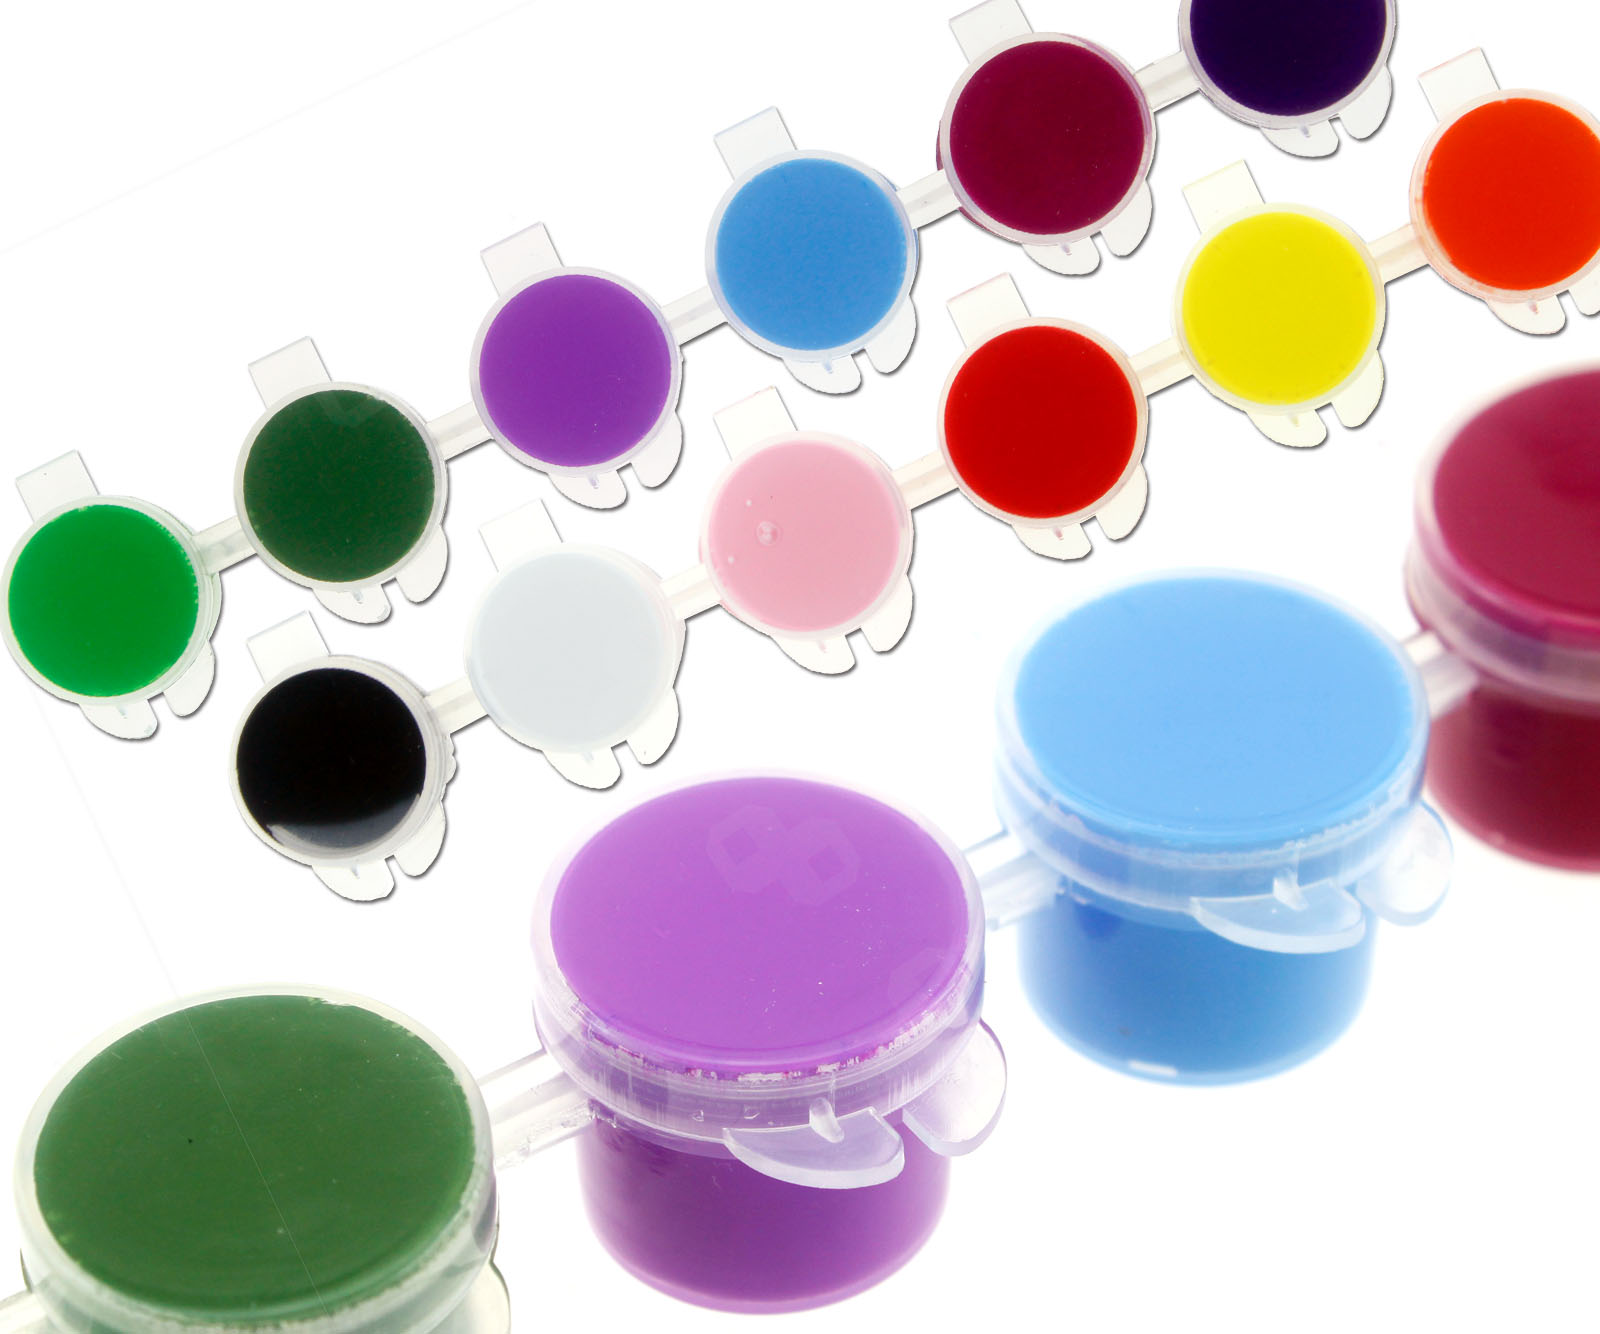 Nail Art Acrylic Paint Set The Best Inspiration For Design And